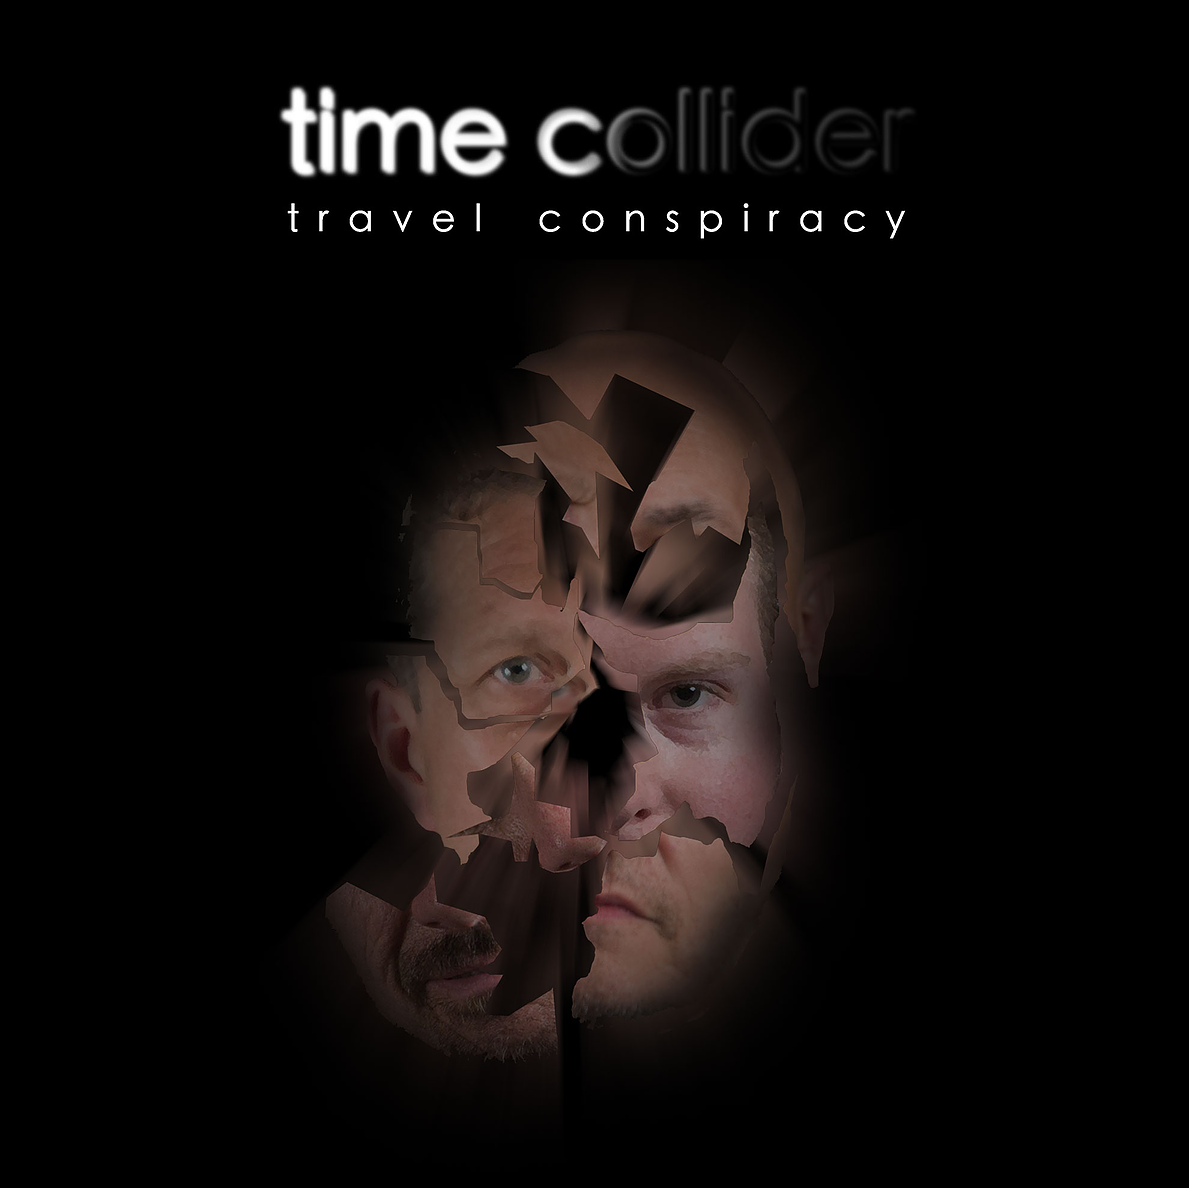 Travel conspiracy - TIME COLLIDER